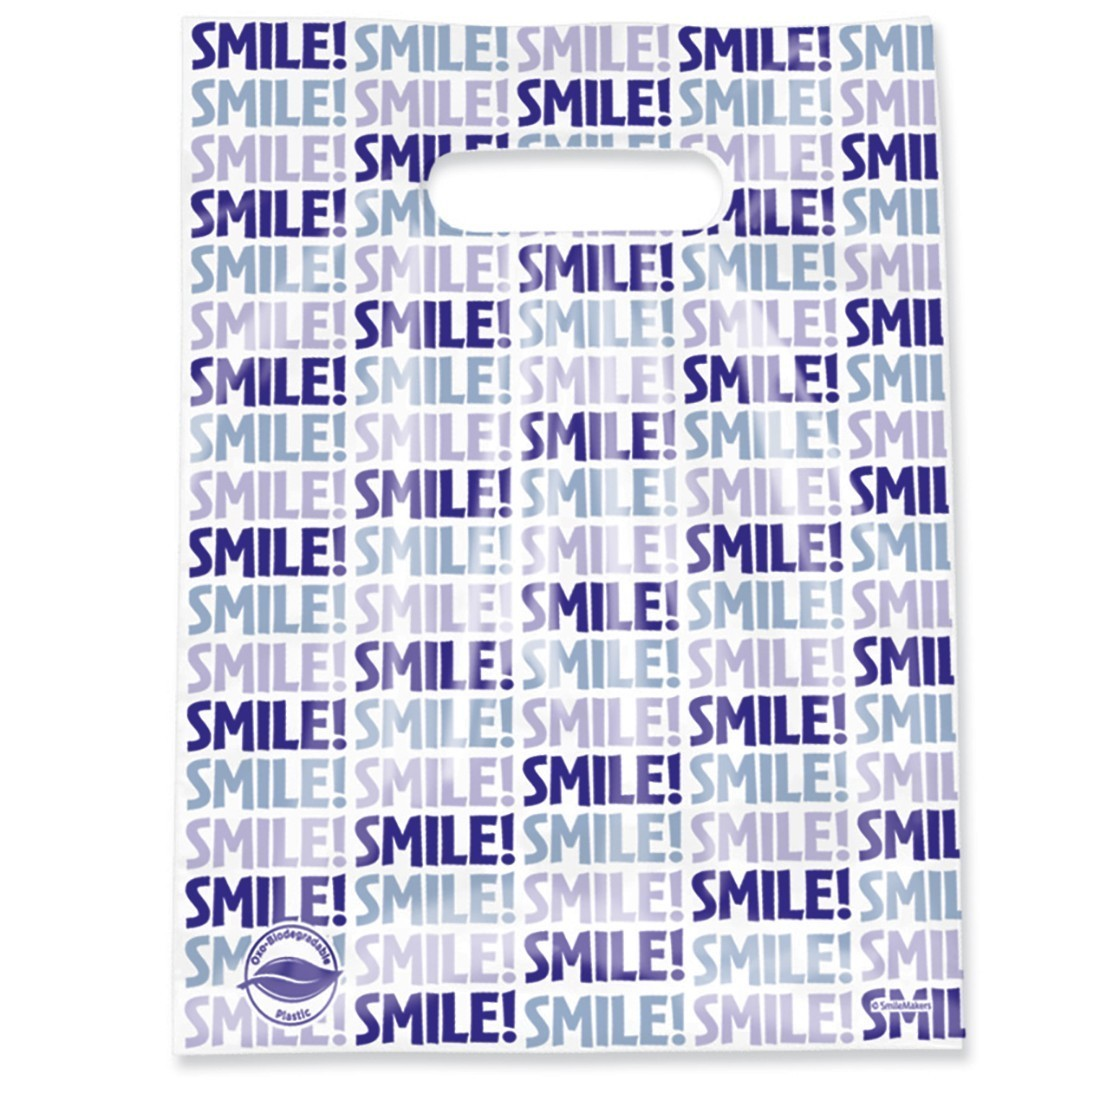 Scatter Oxobiodegradable Smile Bags [image]